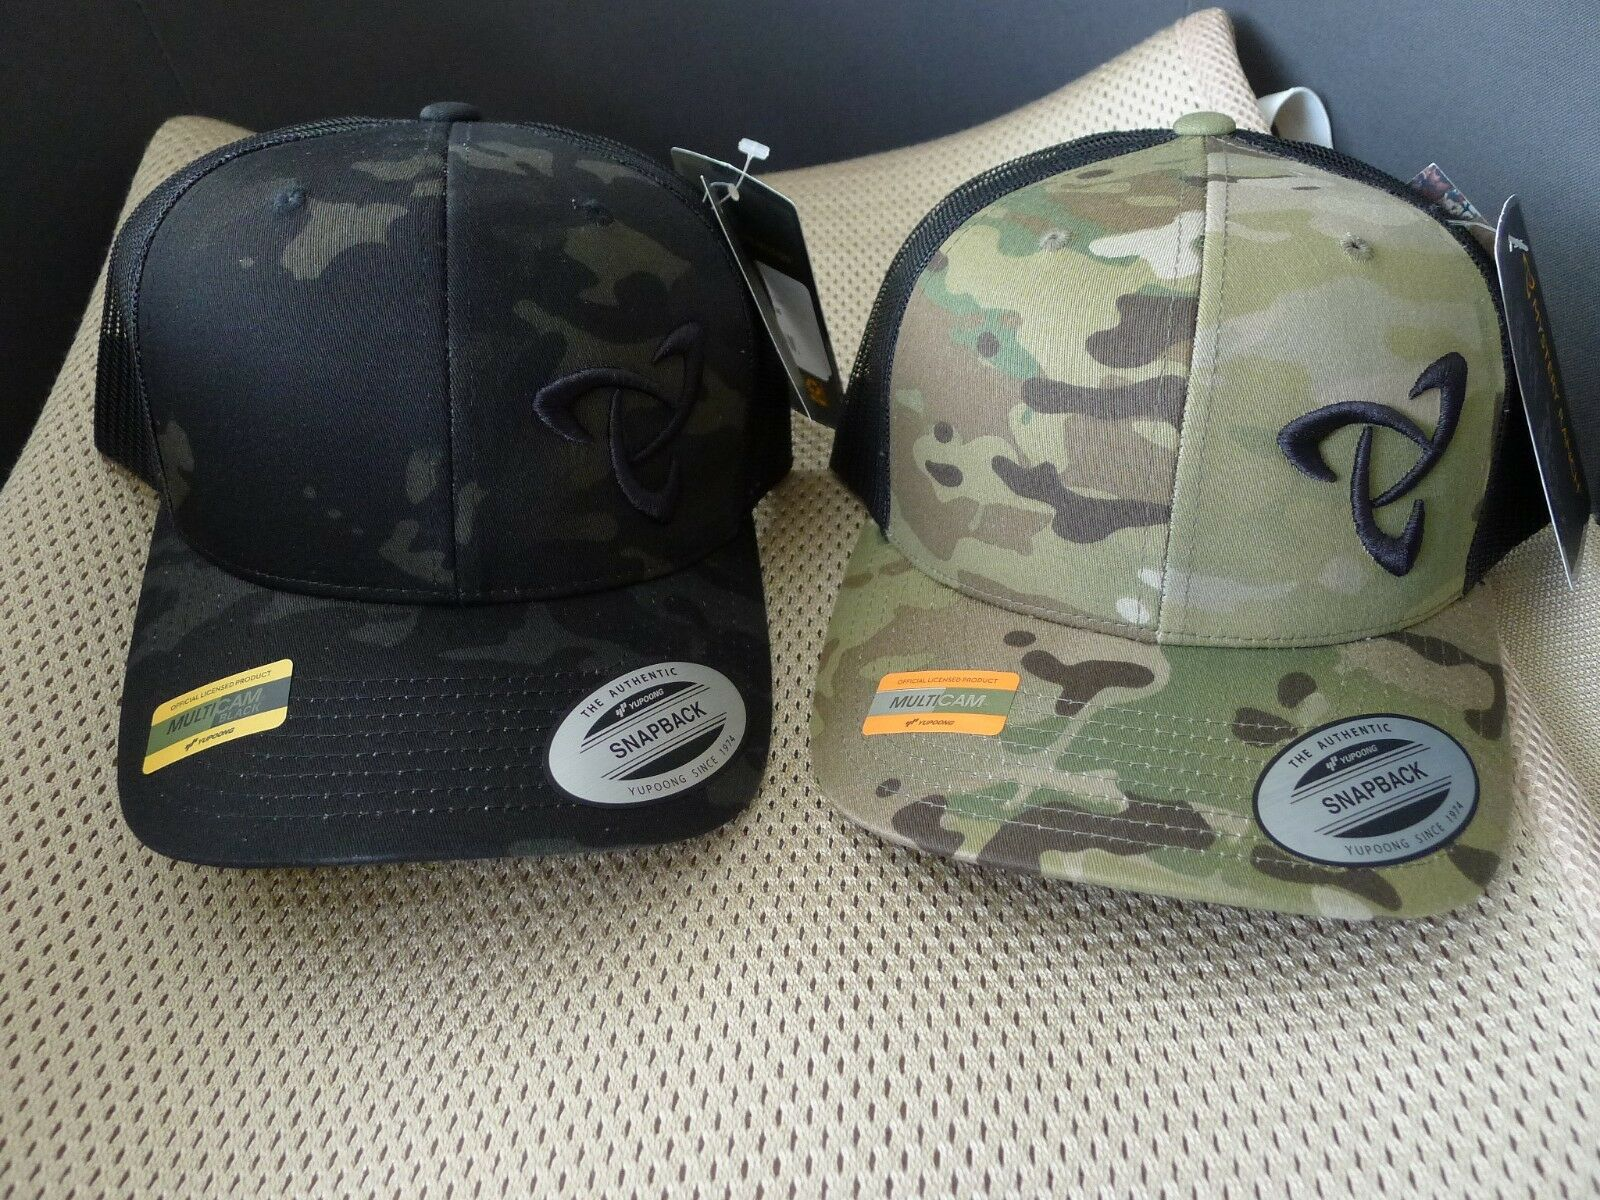 1b8959be402df Mystery Ranch hat cap Multicam   Black Multicam 2 in one listing new with  tag USD 149.99 - Compracompras.com Singapore